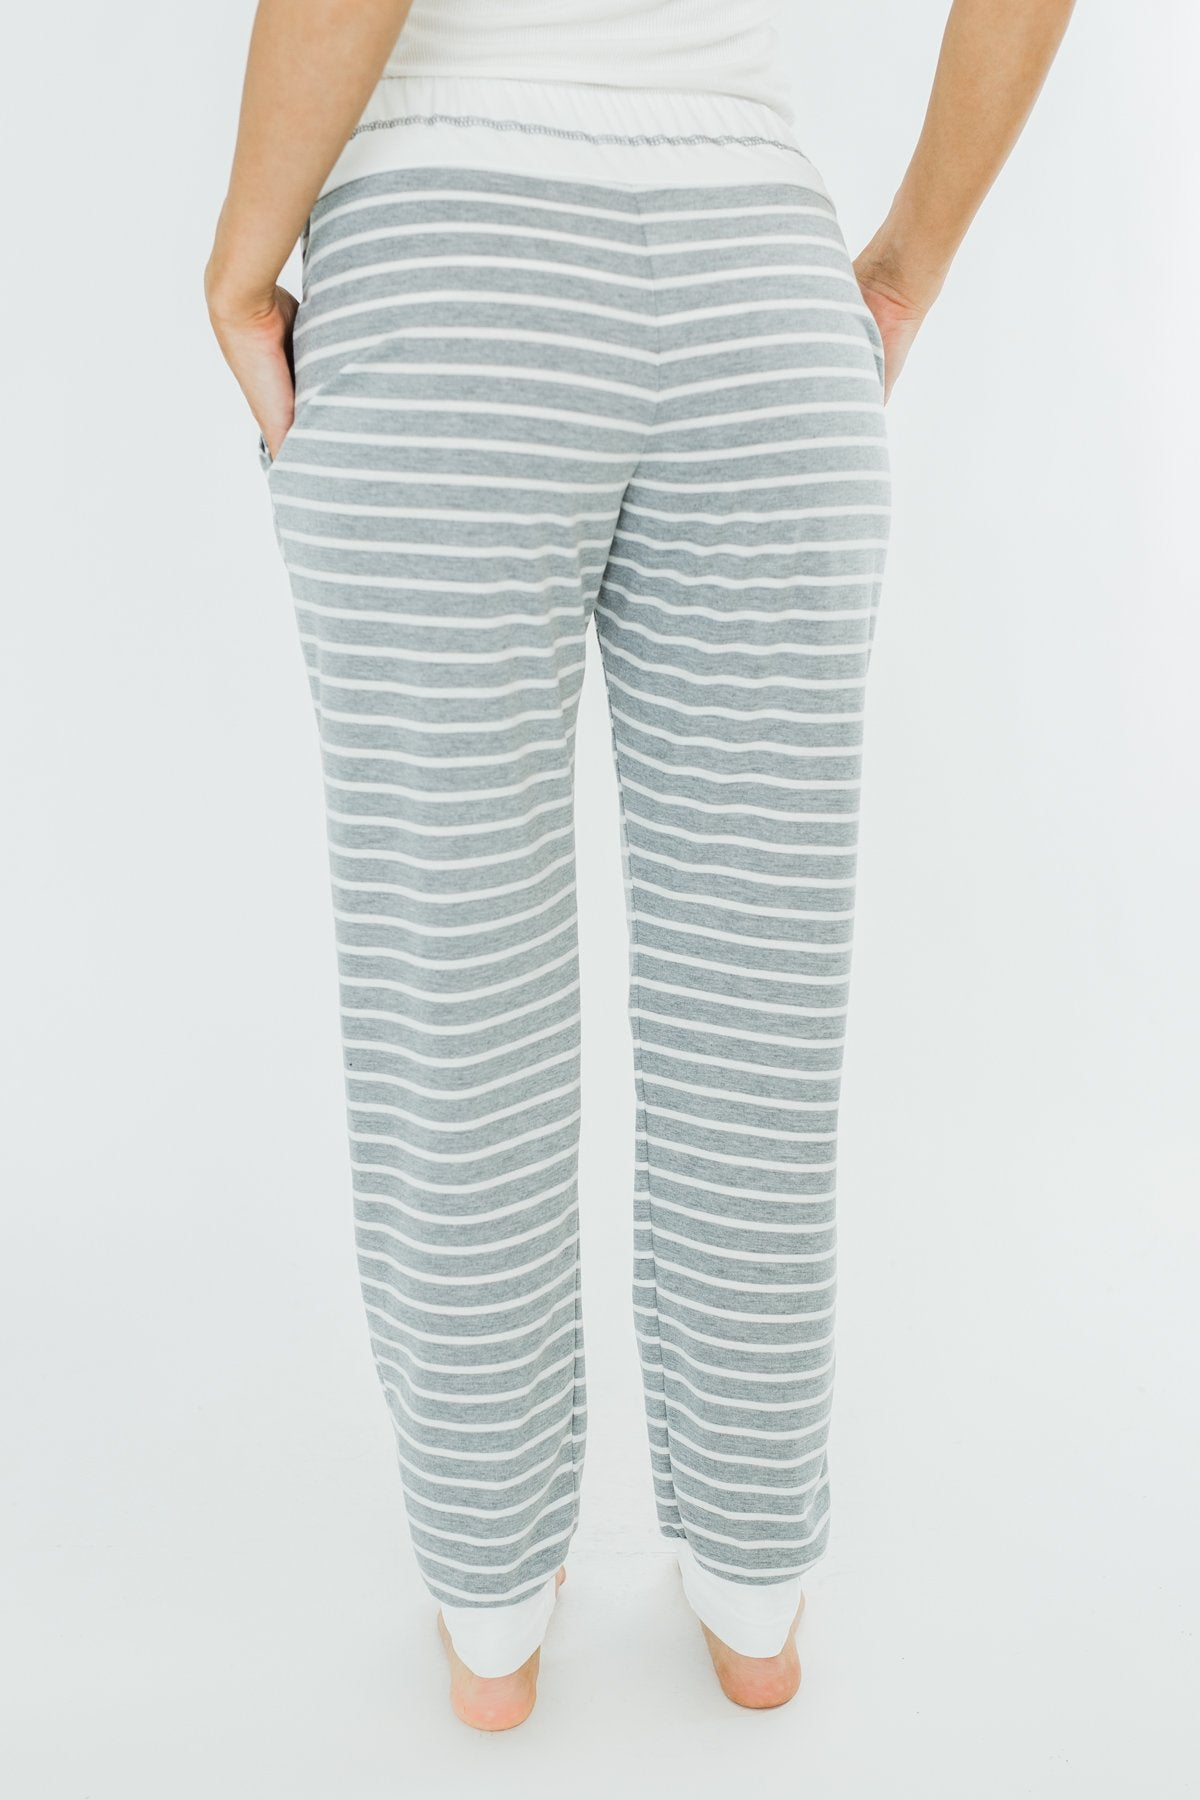 Cozy Striped Joggers- Heather Grey & Ivory